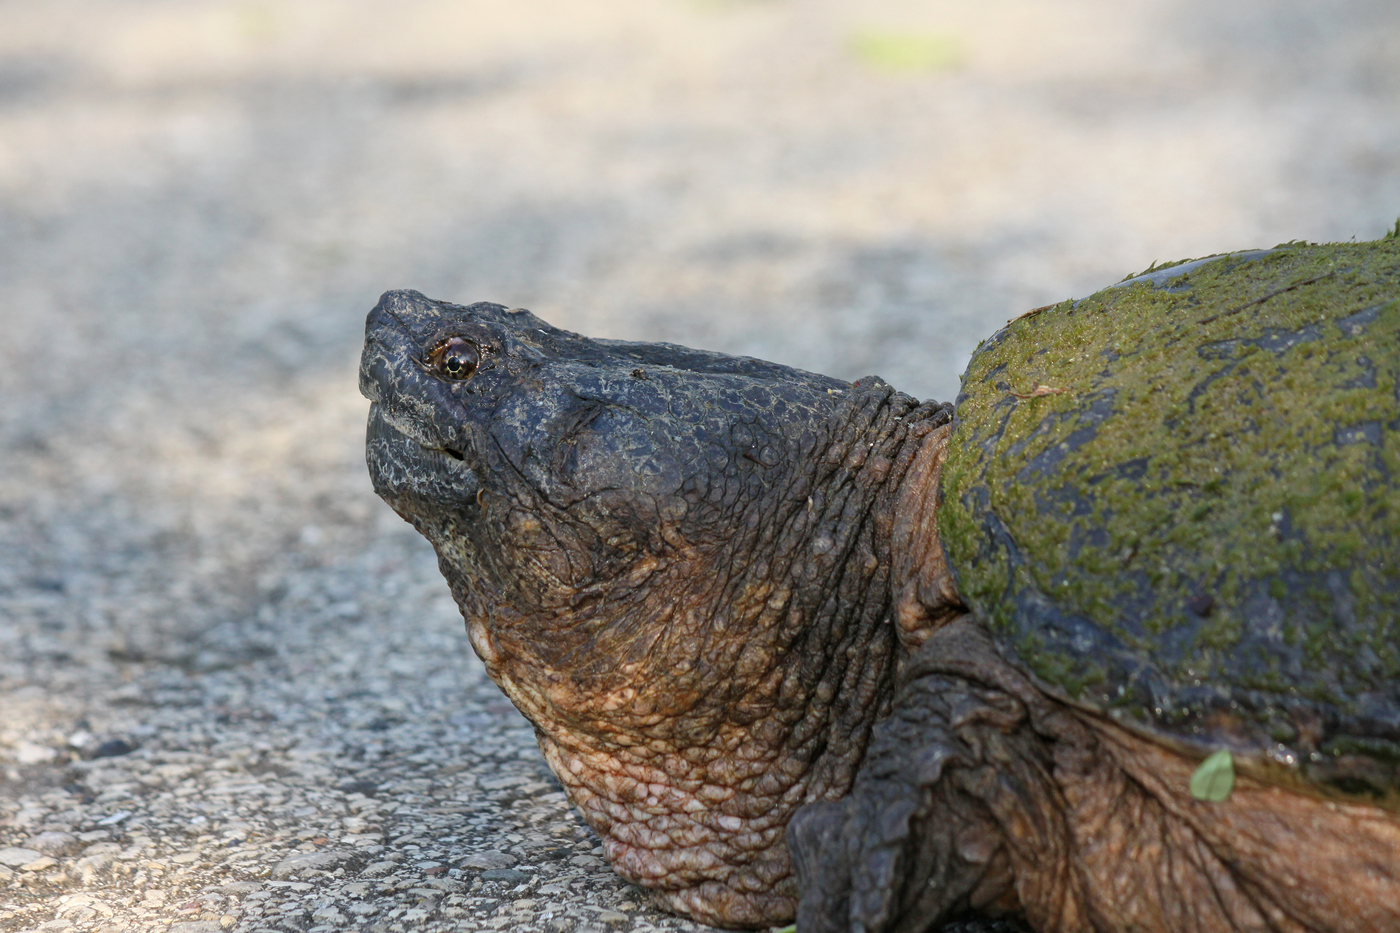 Snapping Turtle #11